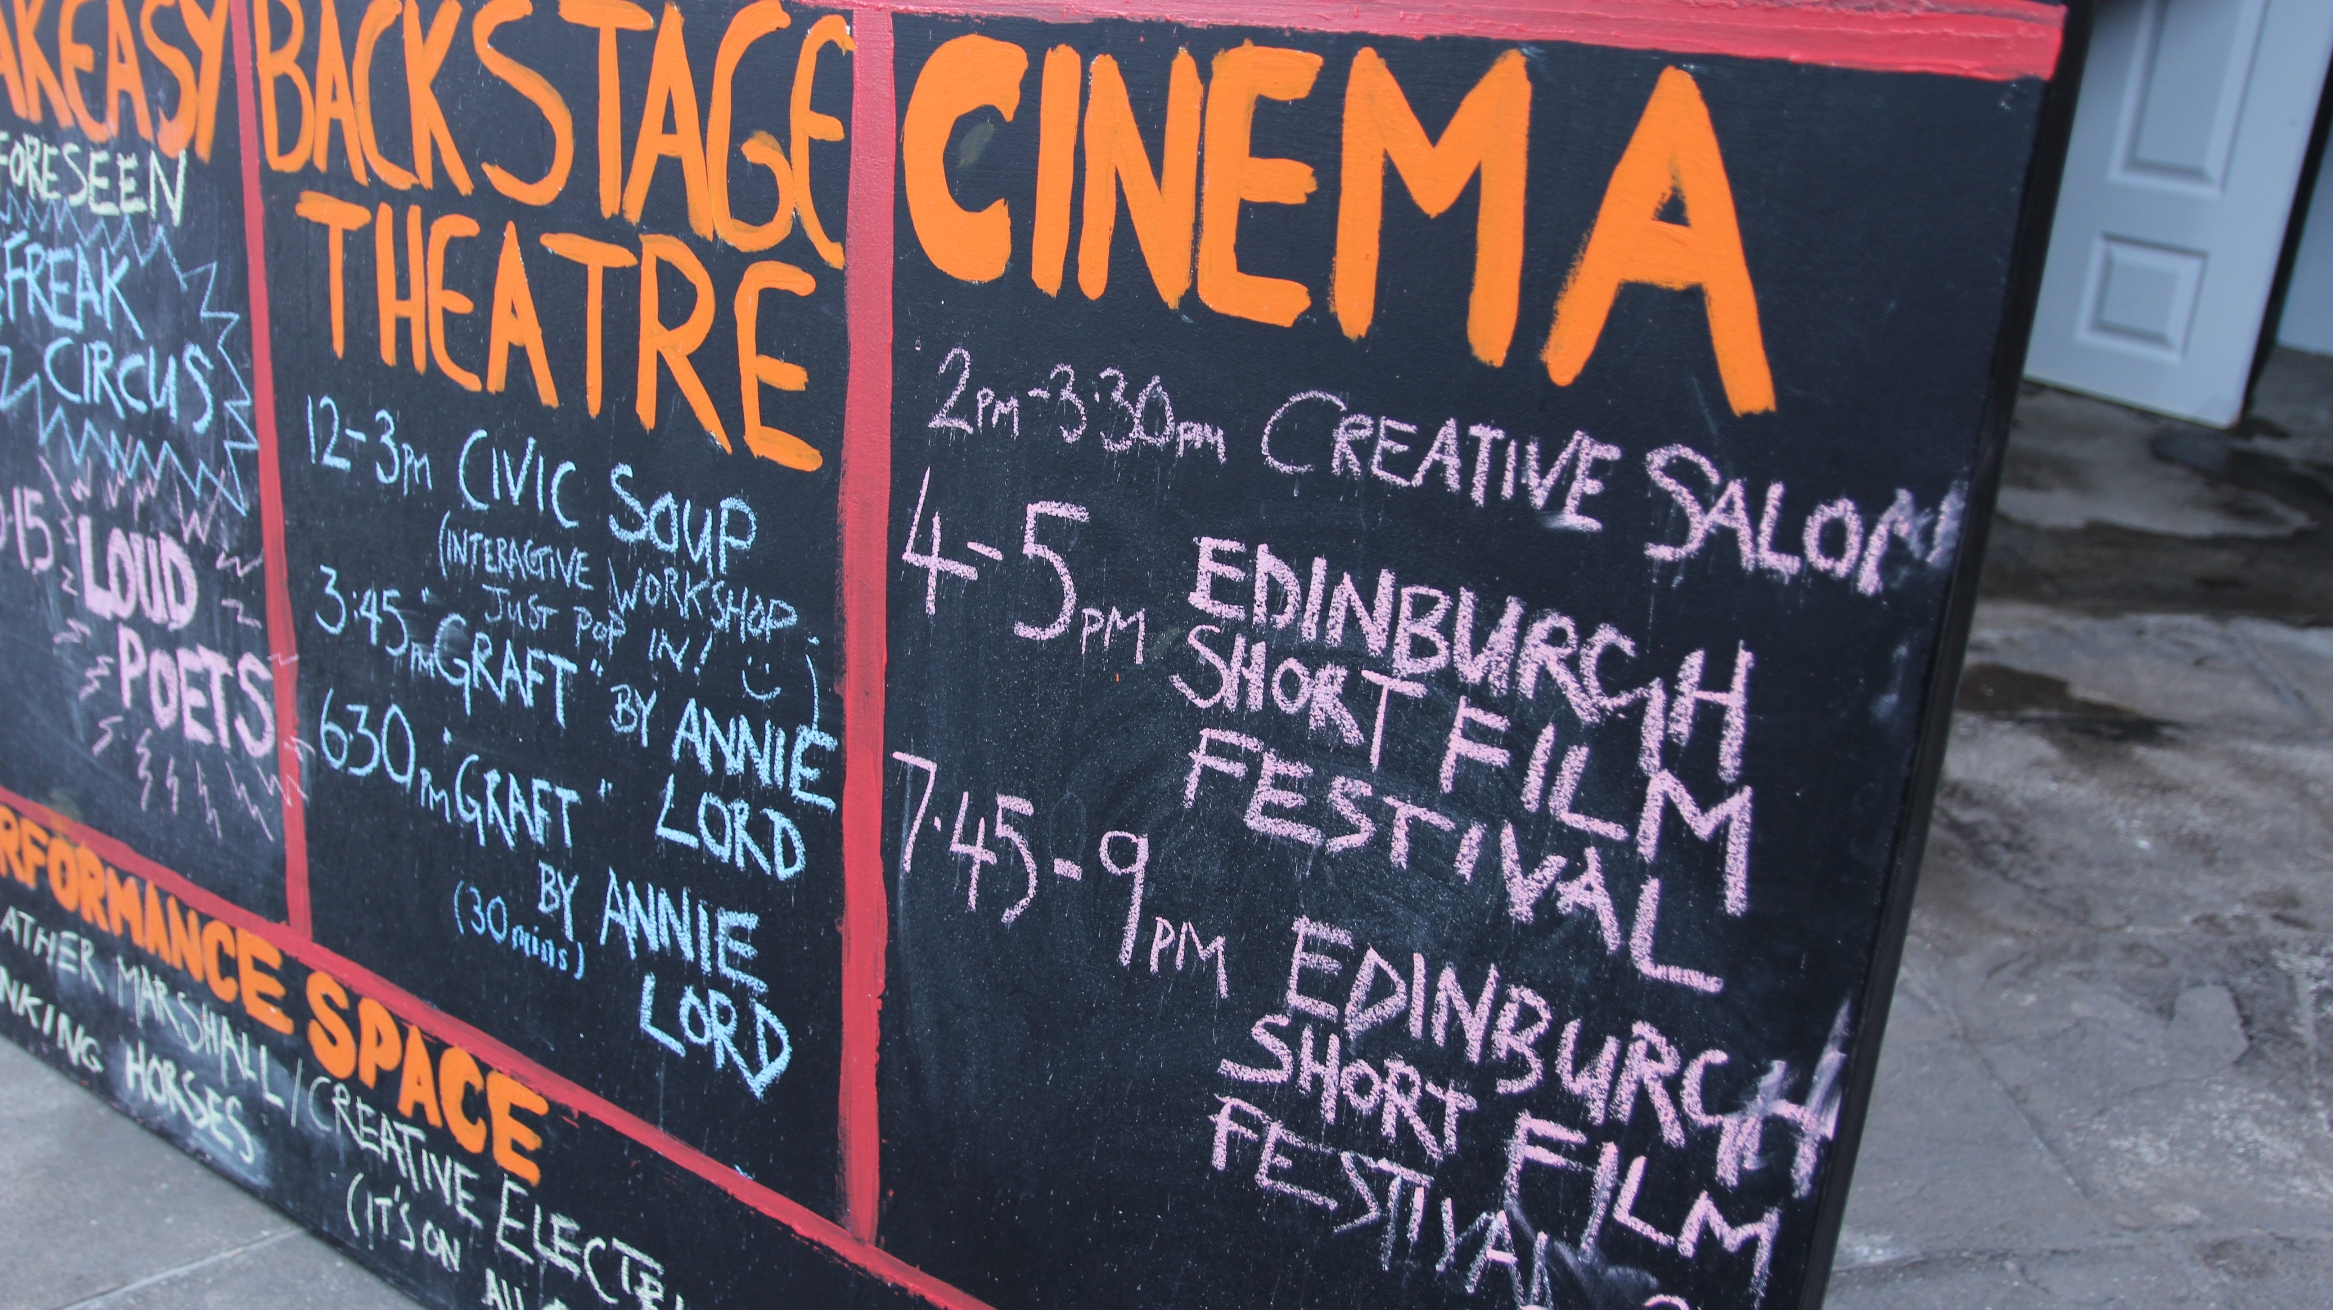 Edinburgh Short Film Festival at Hidden Door 2017,the Leith Theatre